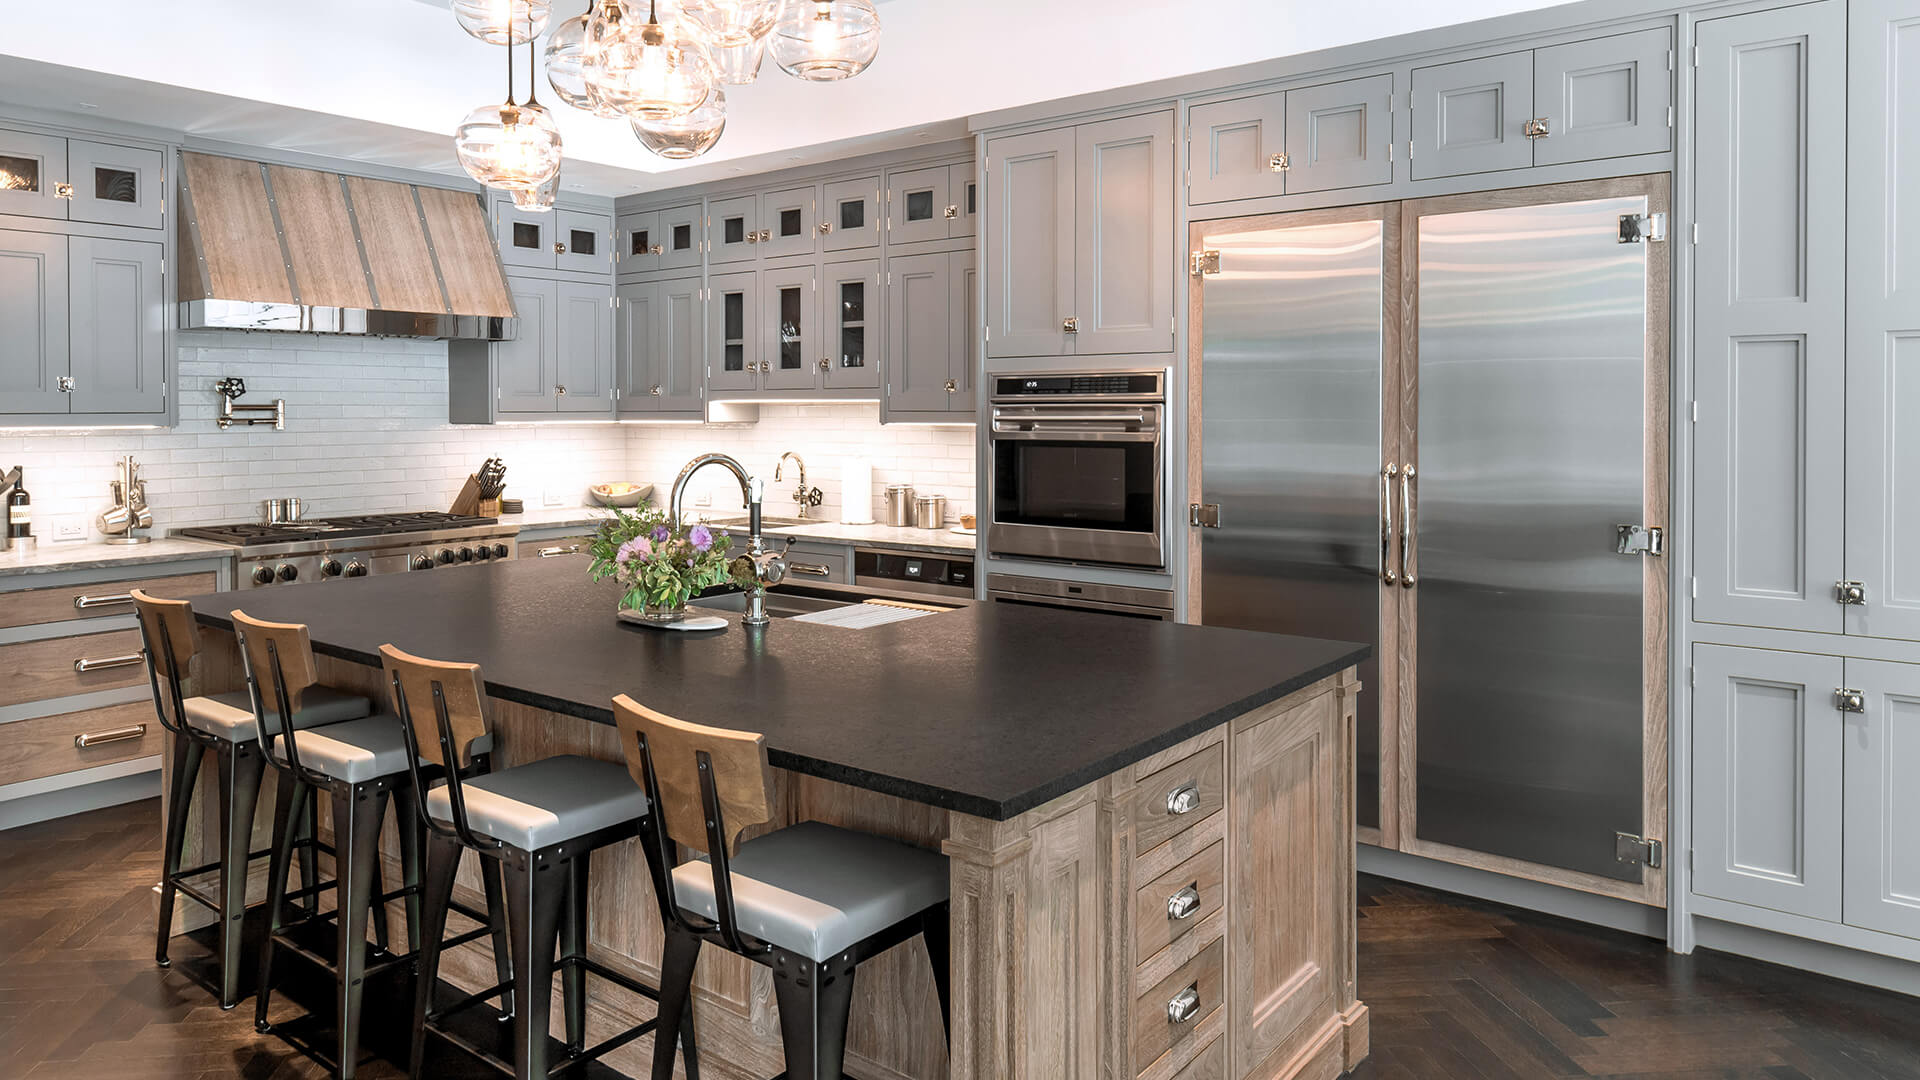 Classic style kitchen with high-end nickel finishes with a walnut range hood equipped with polished nickel band and straps. Inset appliance and glass doors and walnut back